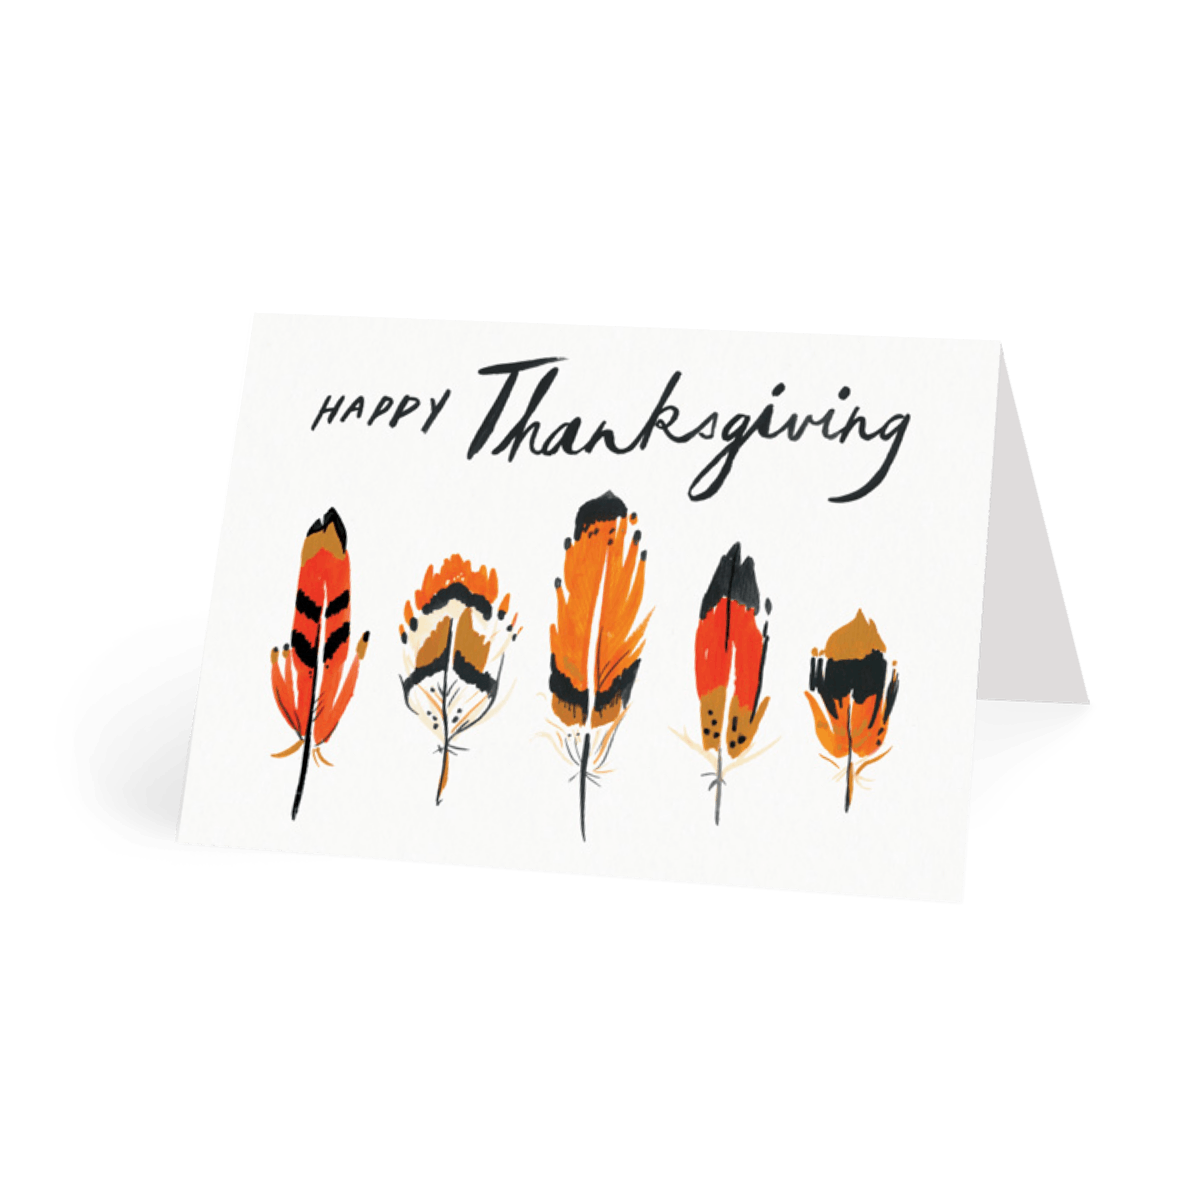 Https%3a%2f%2fwww.papier.com%2fproduct image%2f51153%2f14%2fthanksgiving feathers 12531 front 1543228016.png?ixlib=rb 1.1